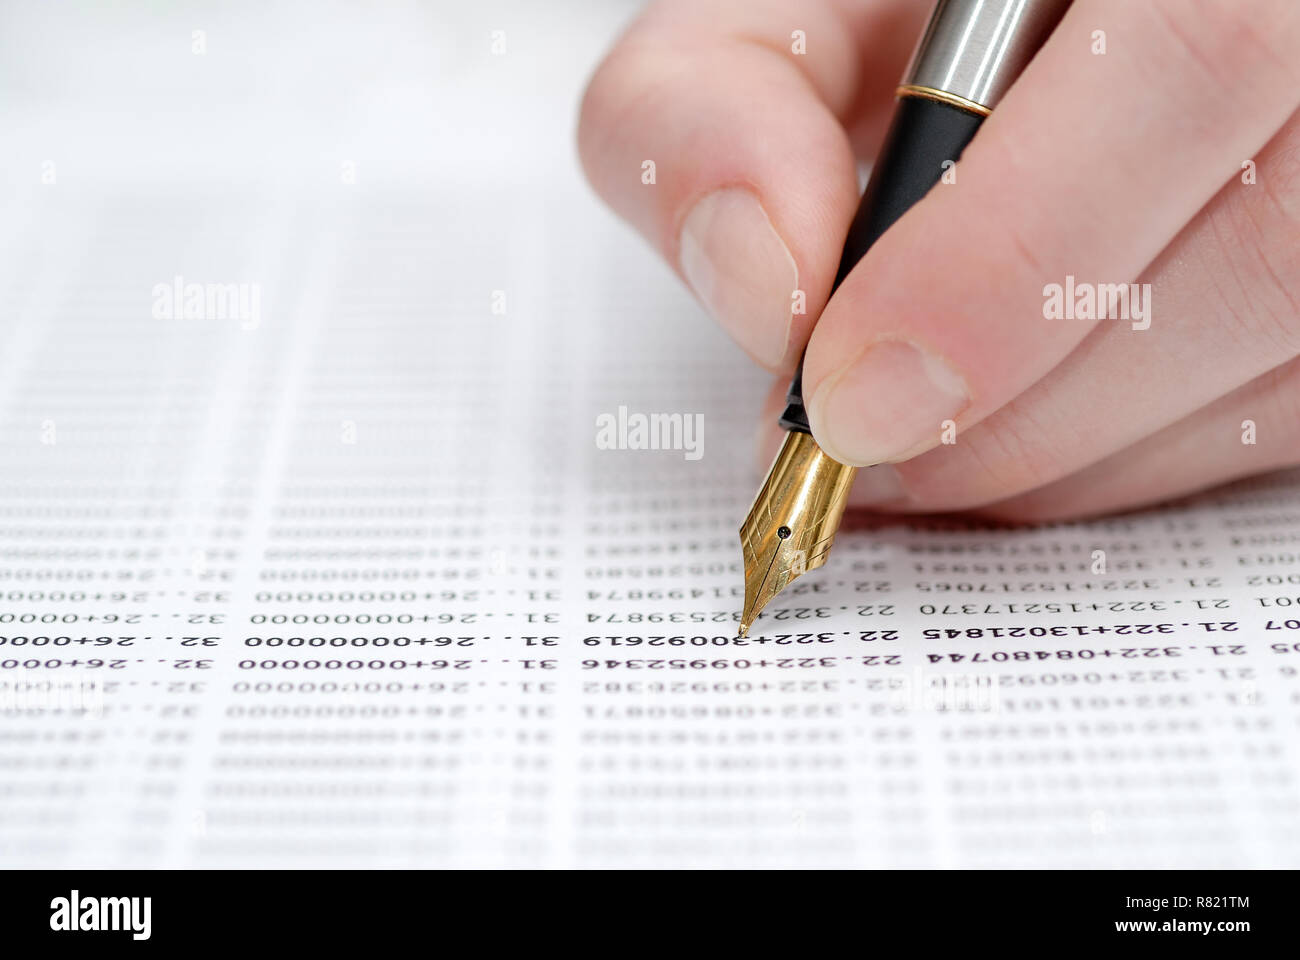 Woman's hand holding pen, stock quotes in background Stock